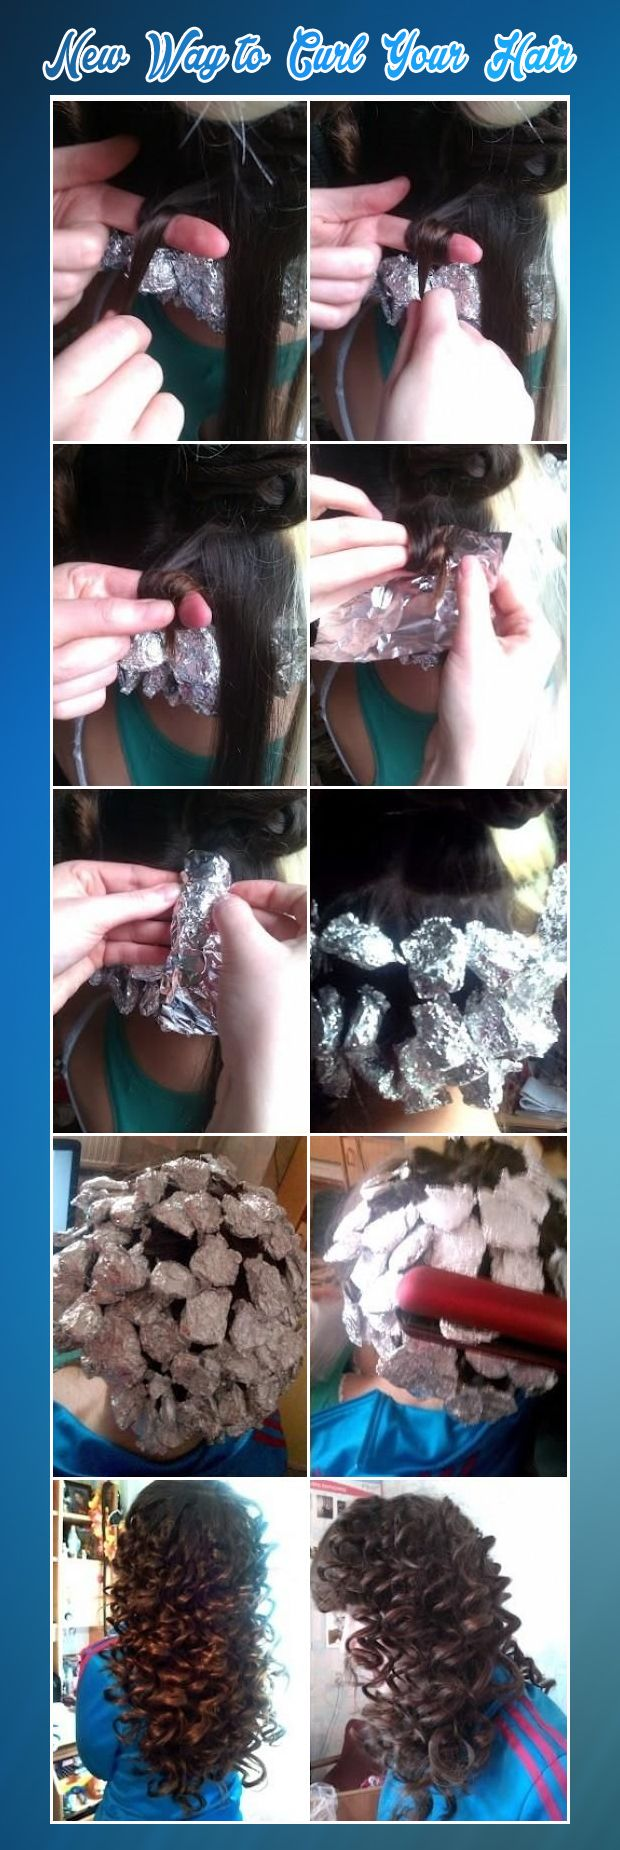 New  Way to  Curl  Your  Hair  With  Foil